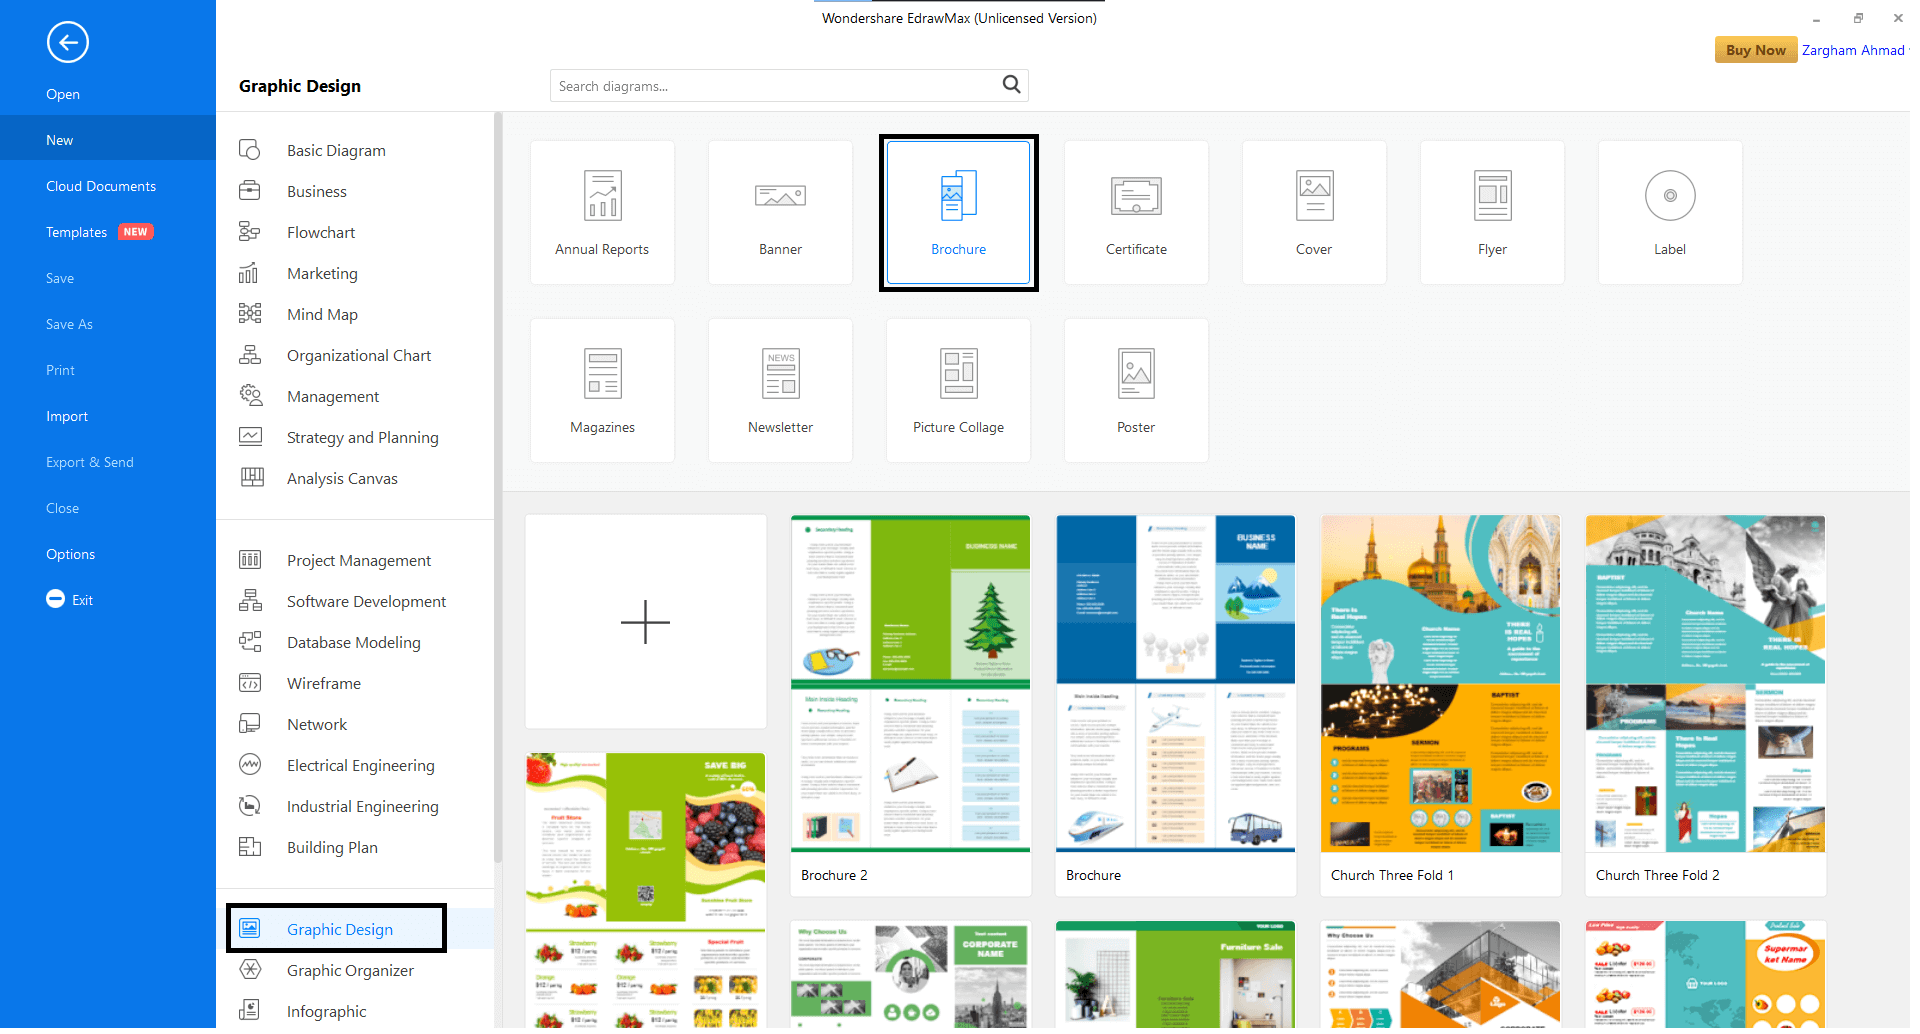 Open the Graphic Design tab and select Brochure